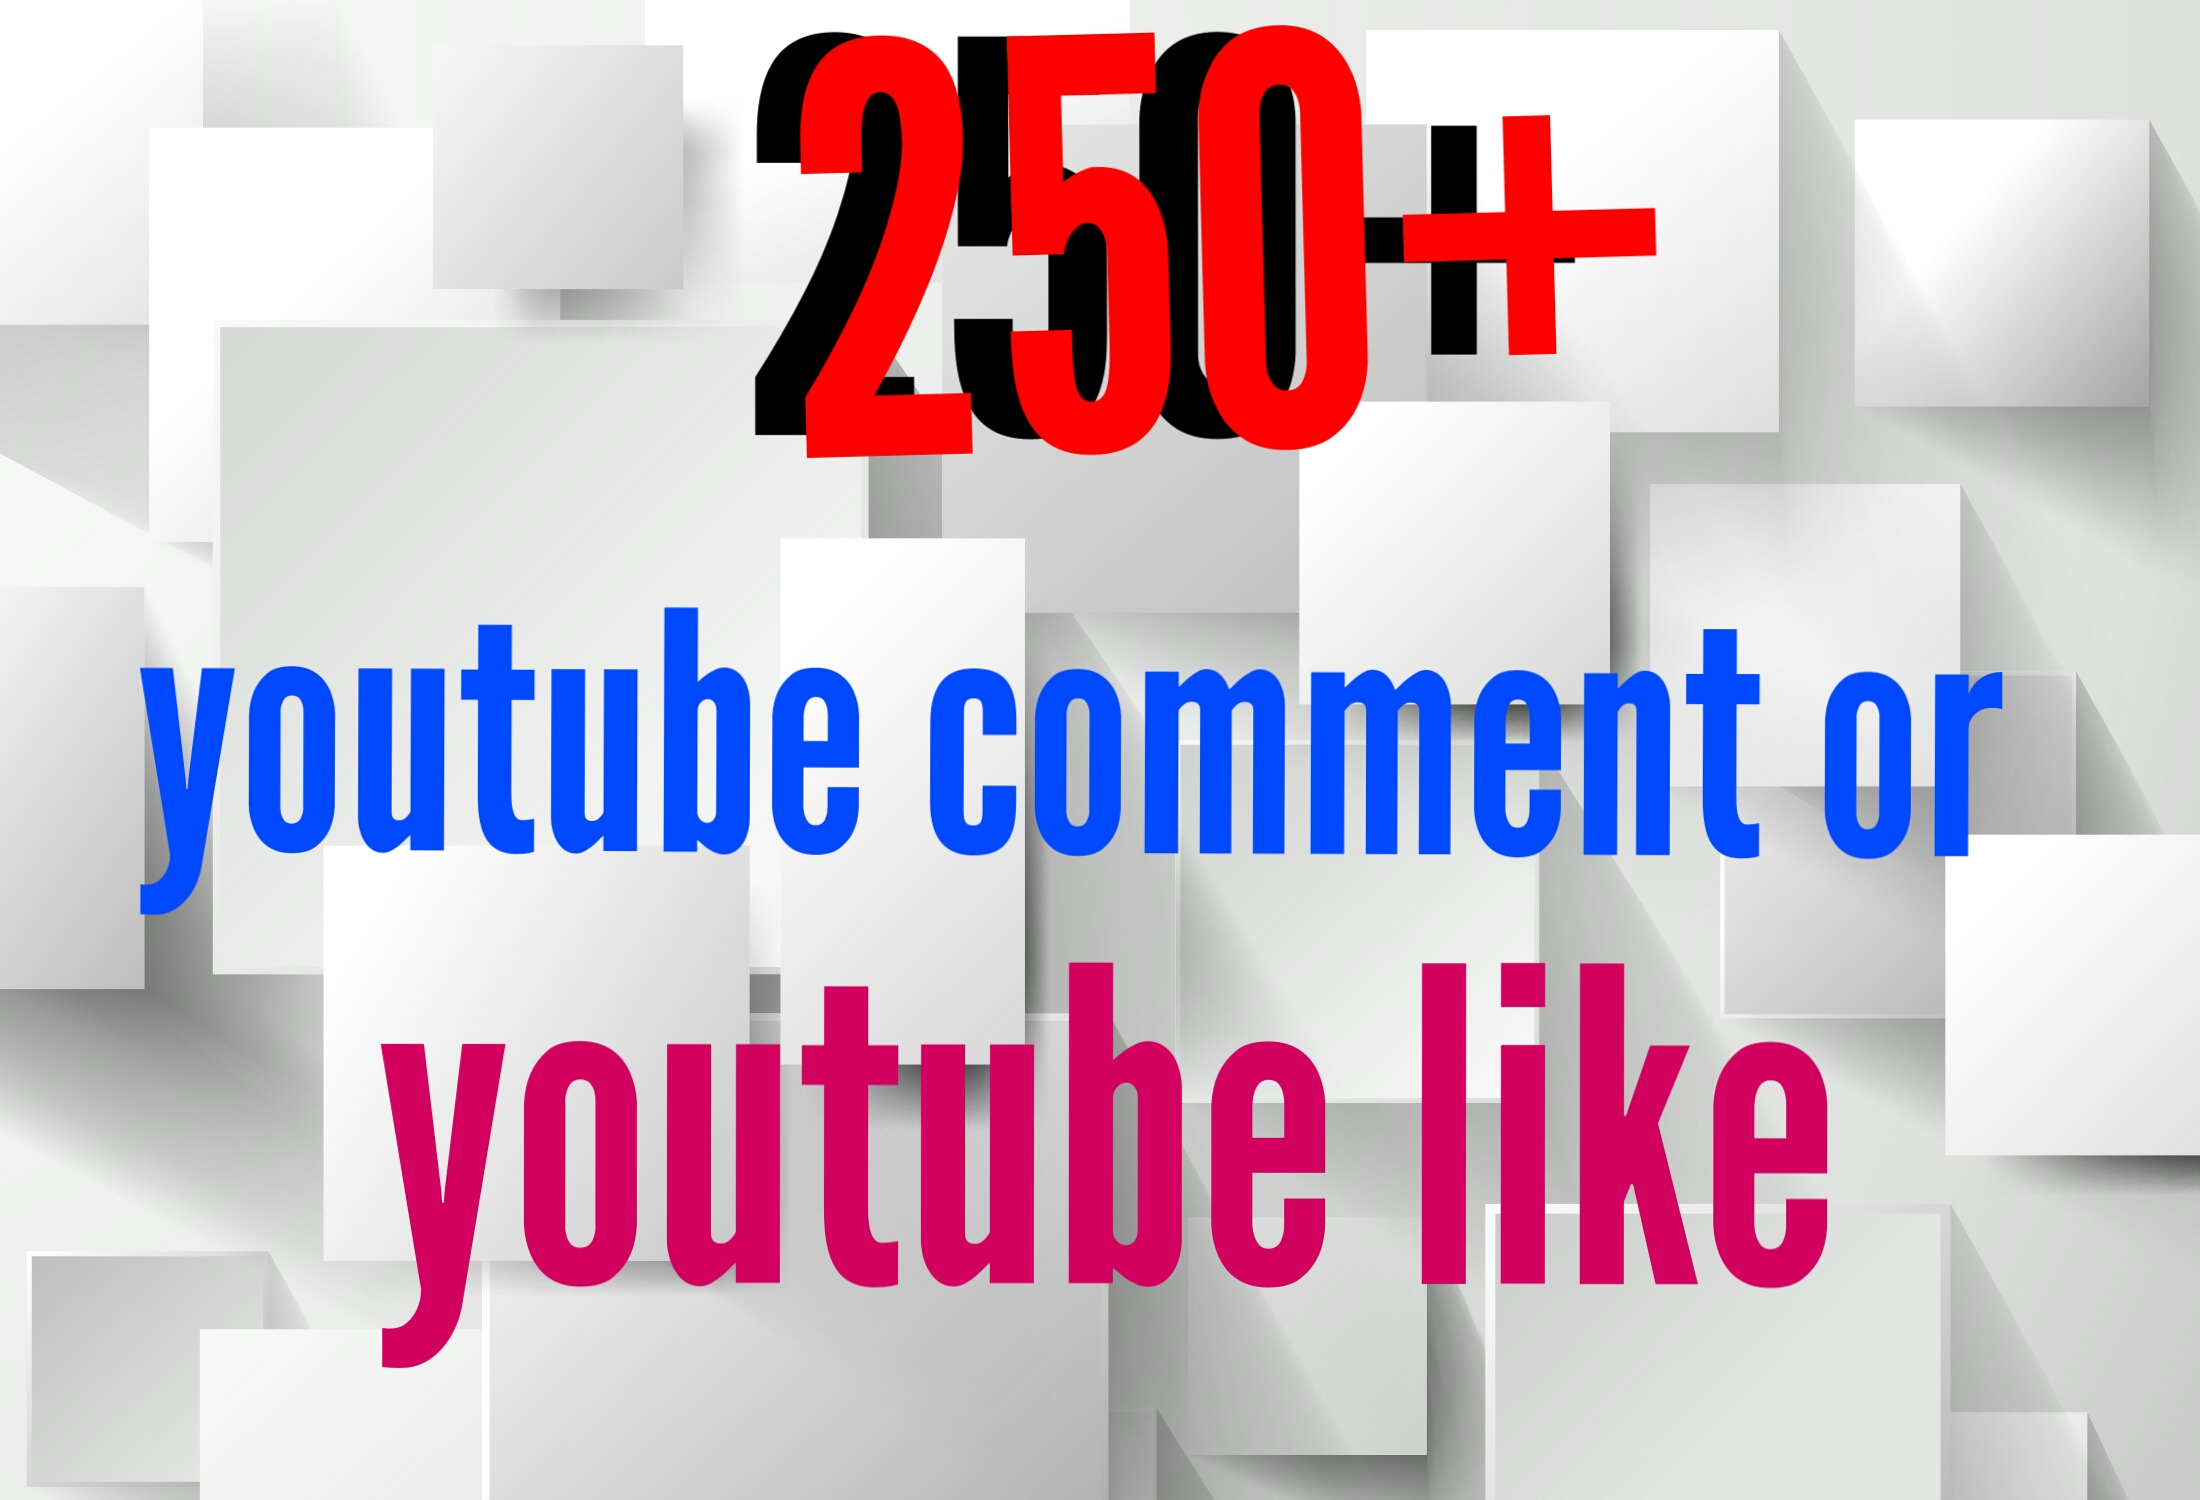 250+ YouTube Auto comments or 700 YouTube likes give you only